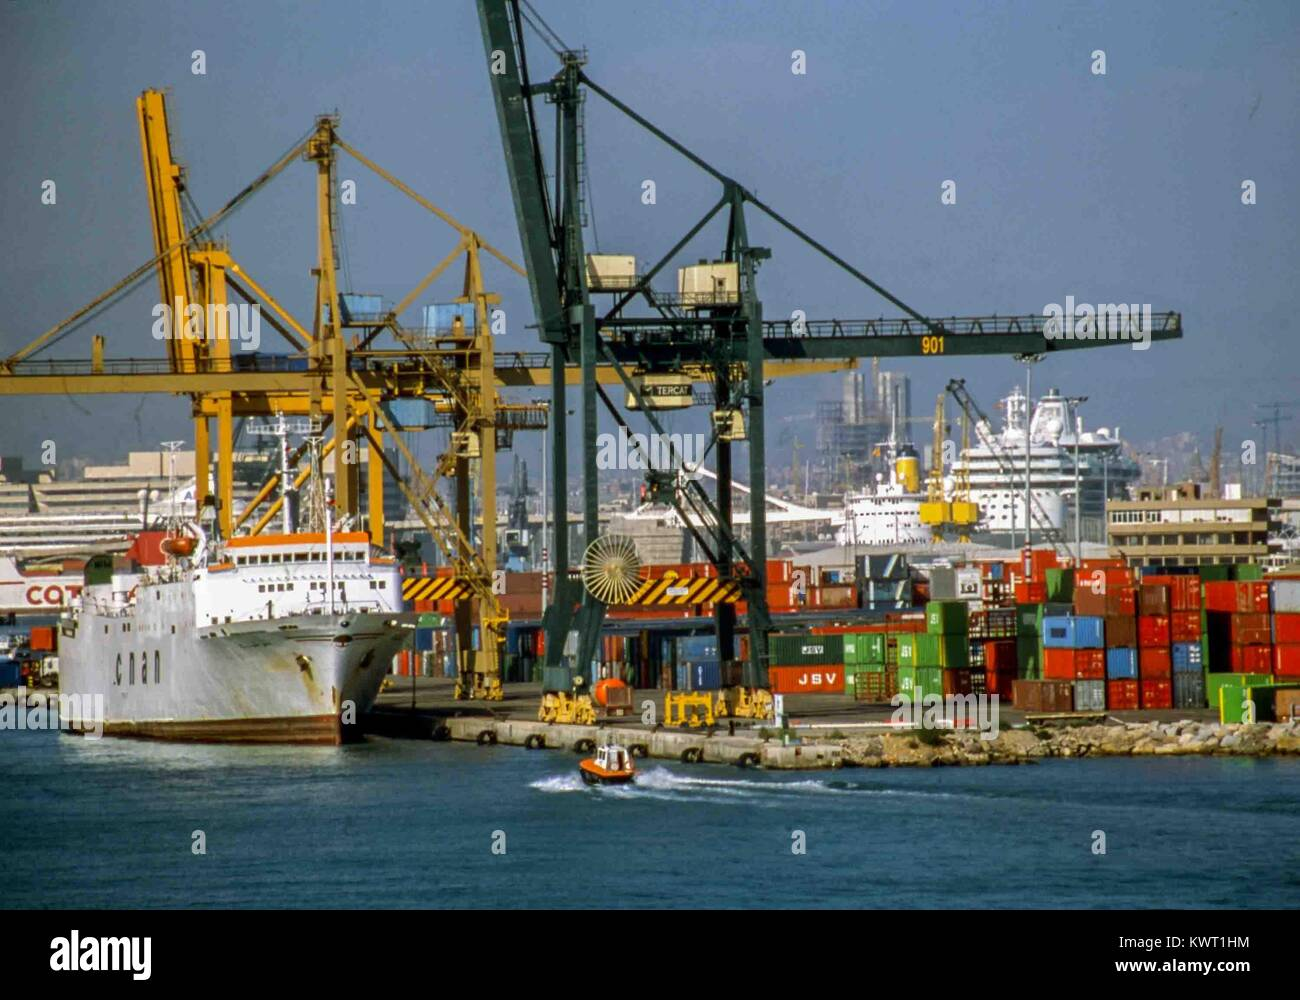 Barcelona, Catalonia, Spain. 22nd Sep, 2004. Container ships are loaded in Barcelona's busy port. Credit: Arnold - Stock Image